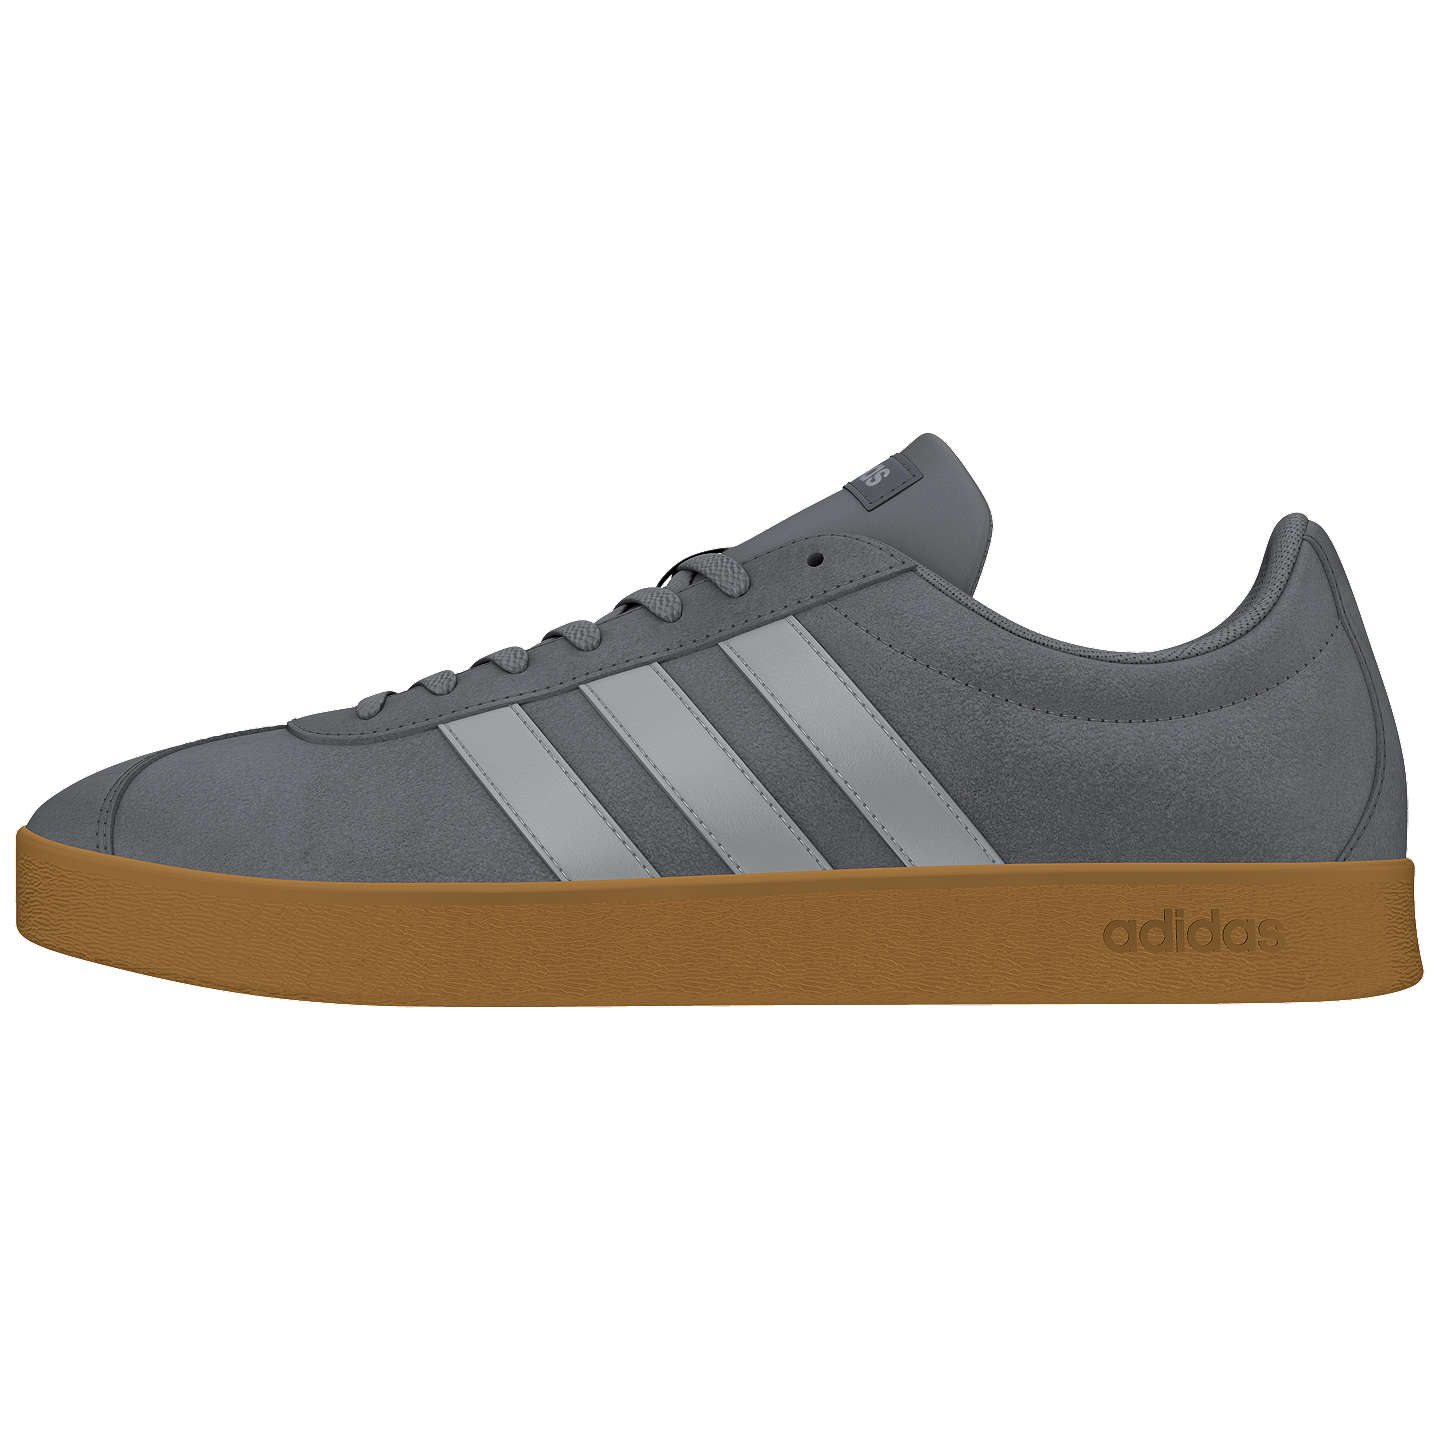 adidas vl neo court leather mens trainers nz